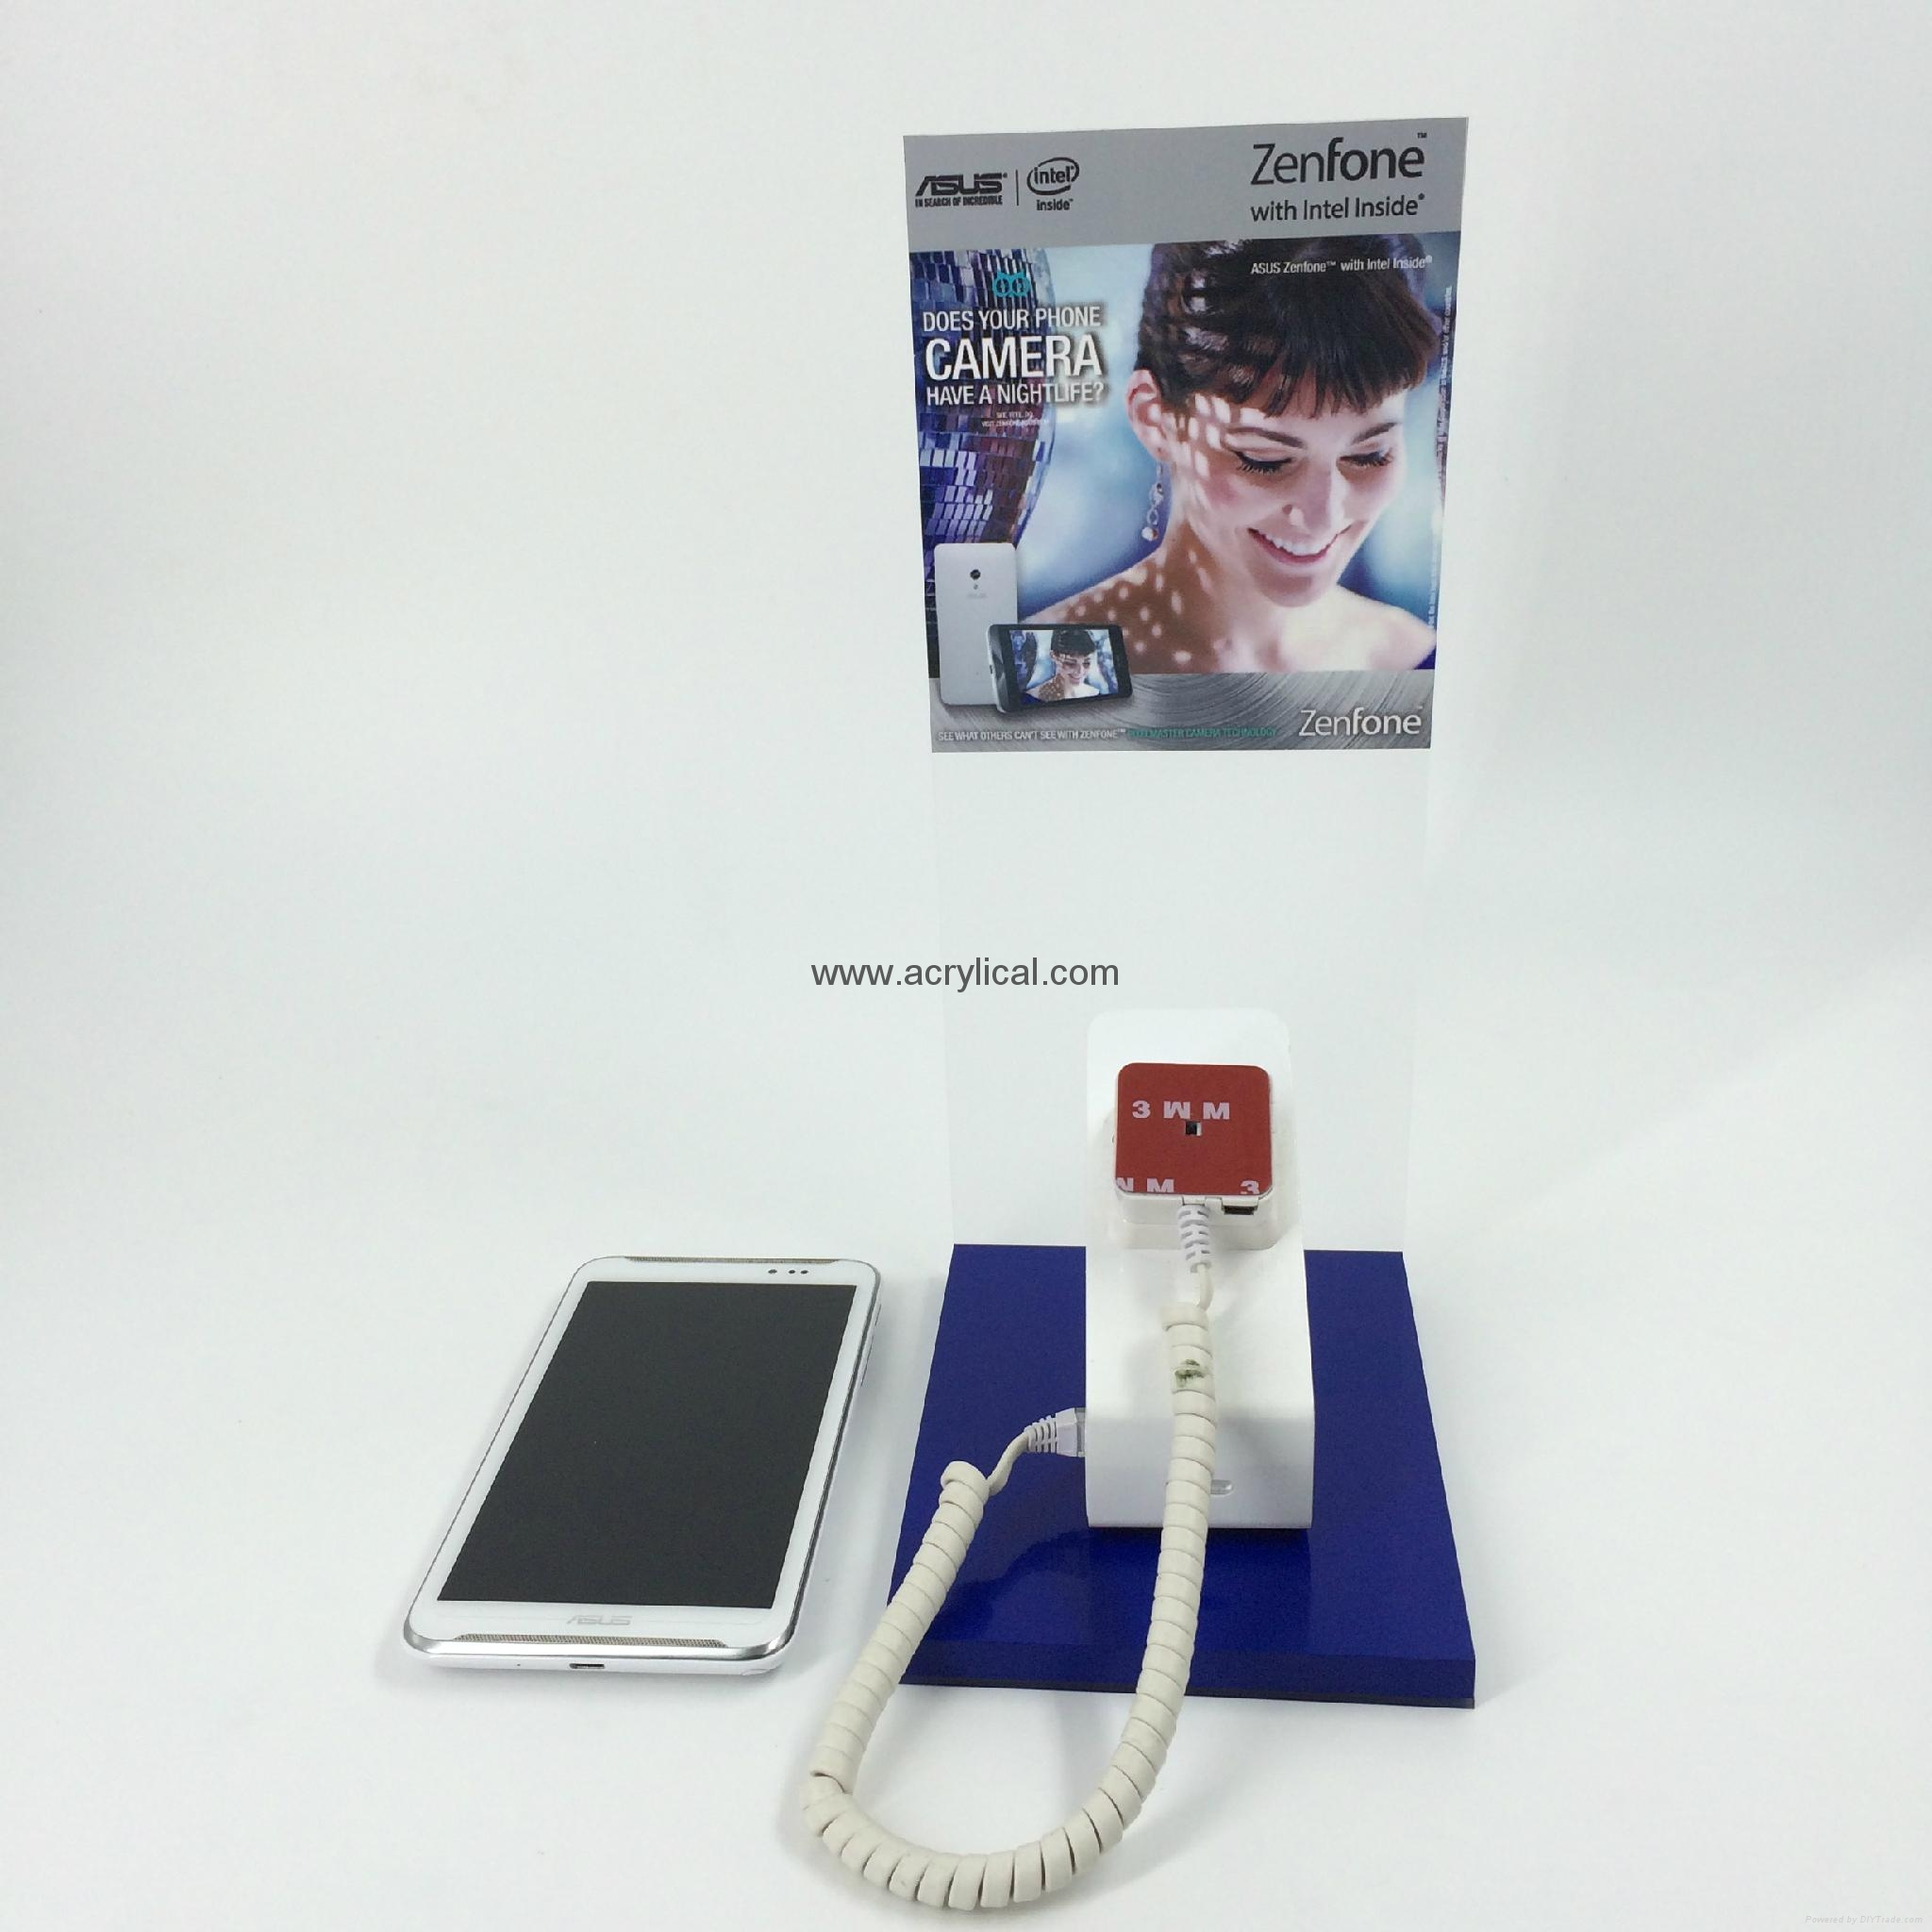 cell phone stand / phone display stands with security alarm system